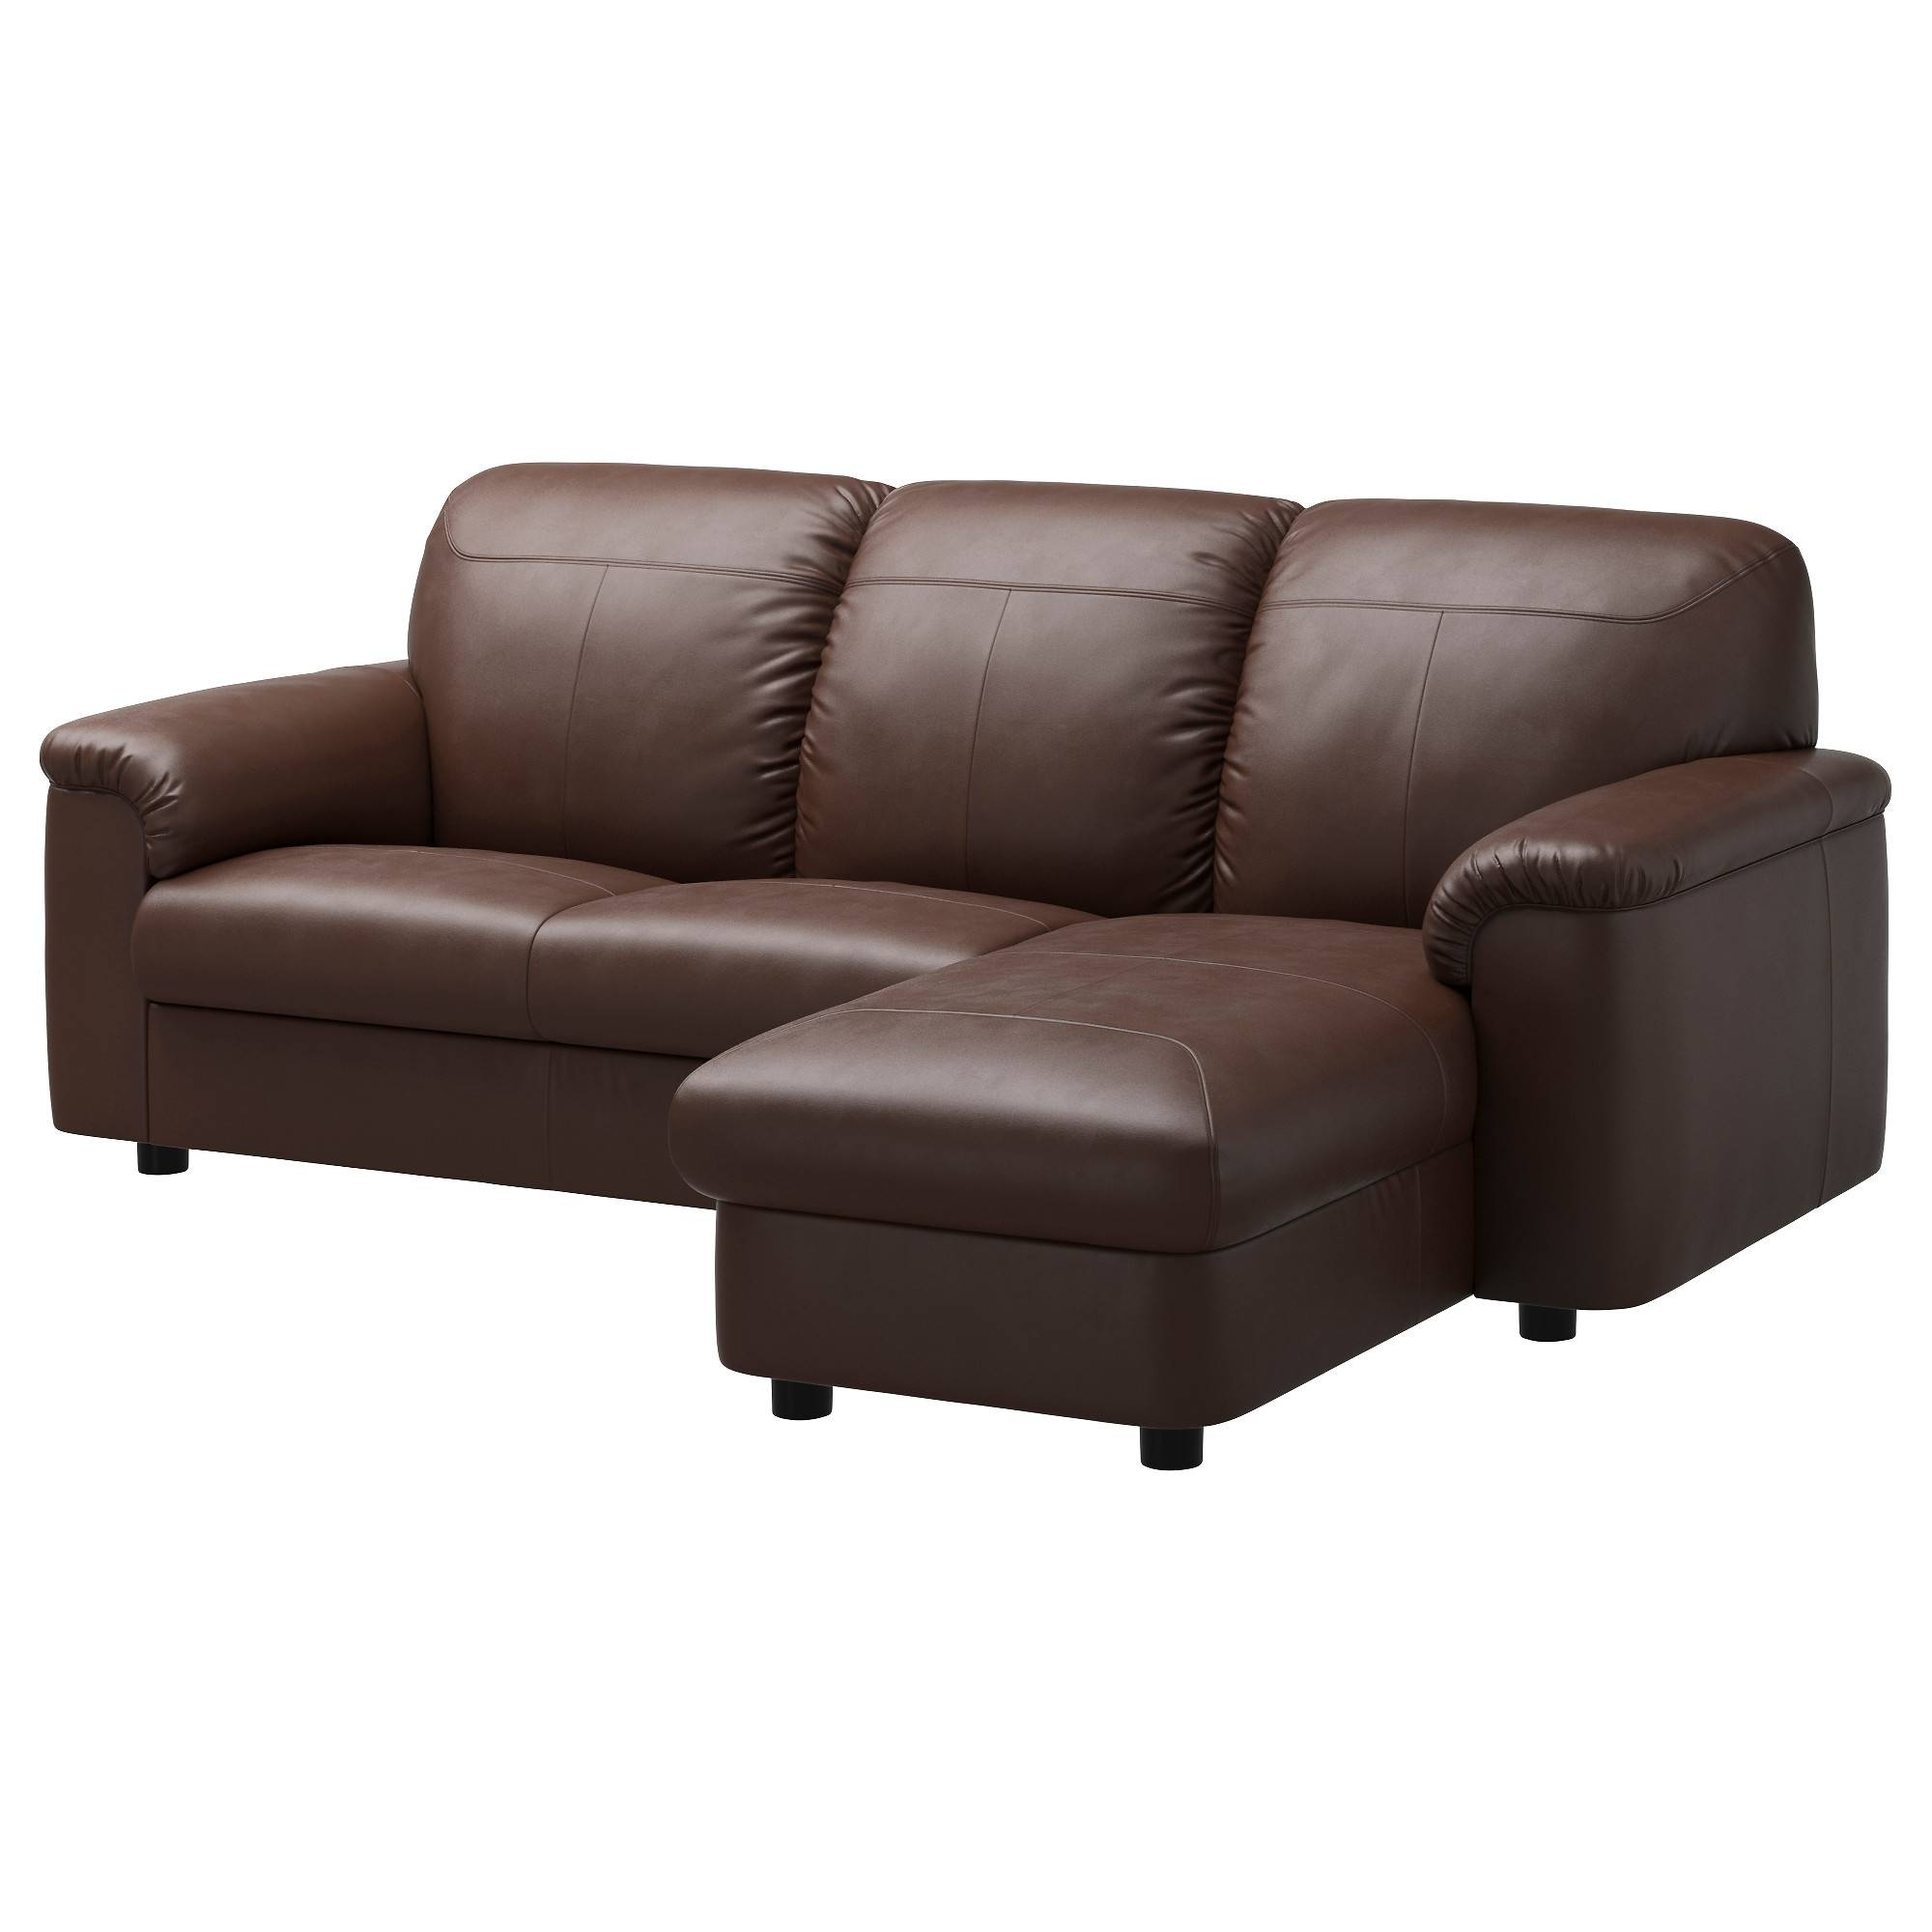 Timsfors Two-Seat Sofa With Chaise Longue Mjuk/kimstad Dark Brown pertaining to Ikea Two Seater Sofas (Image 26 of 30)